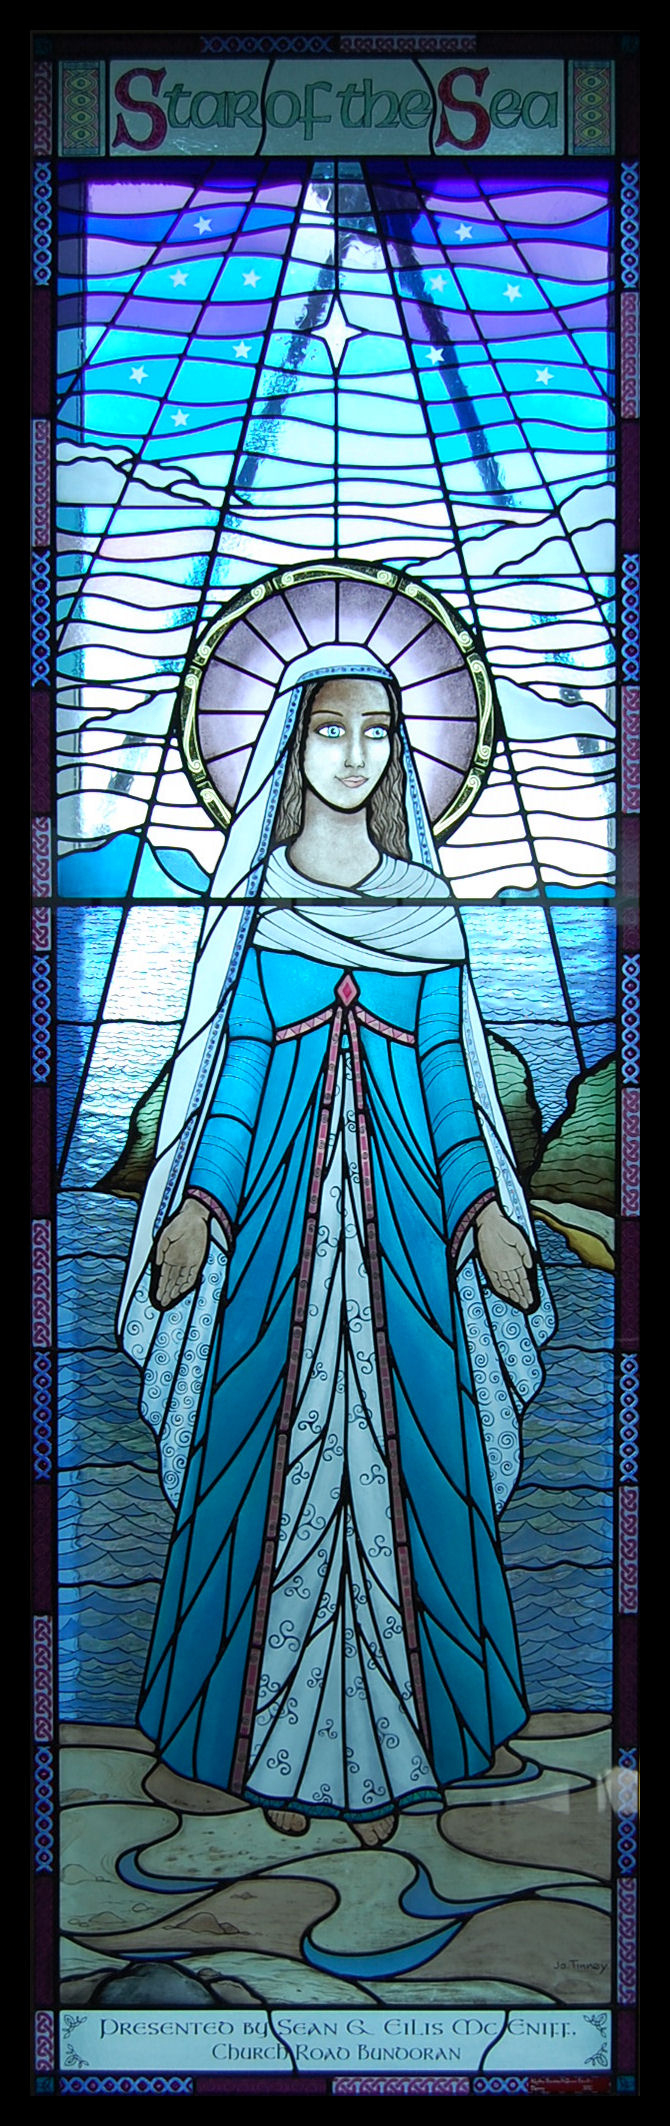 Our Lady Star Of the Sea - Bundoran, Co. Donegal